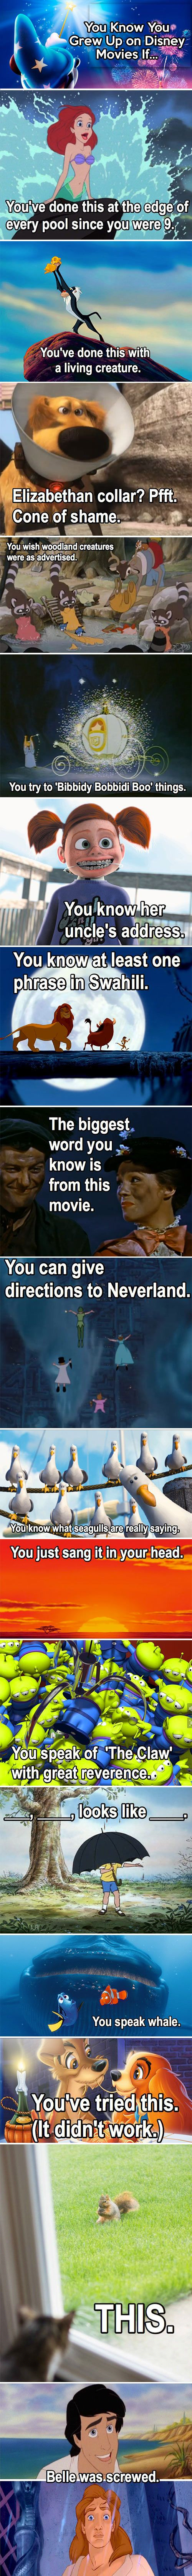 If you love Disney